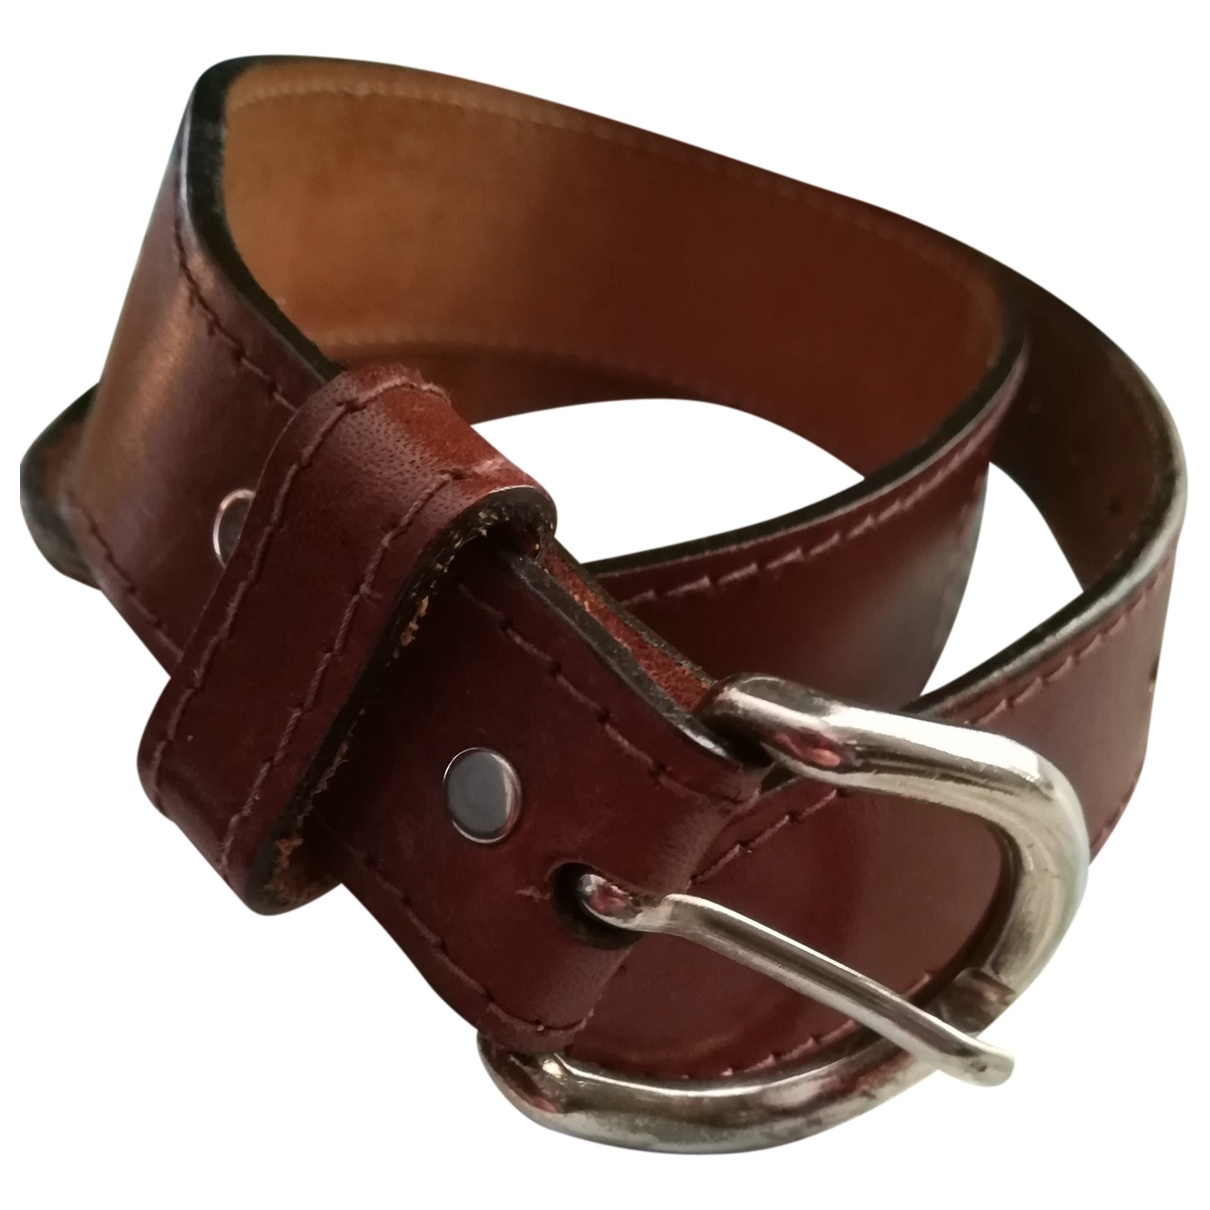 Blumarine \N Brown Leather belt for Women S International